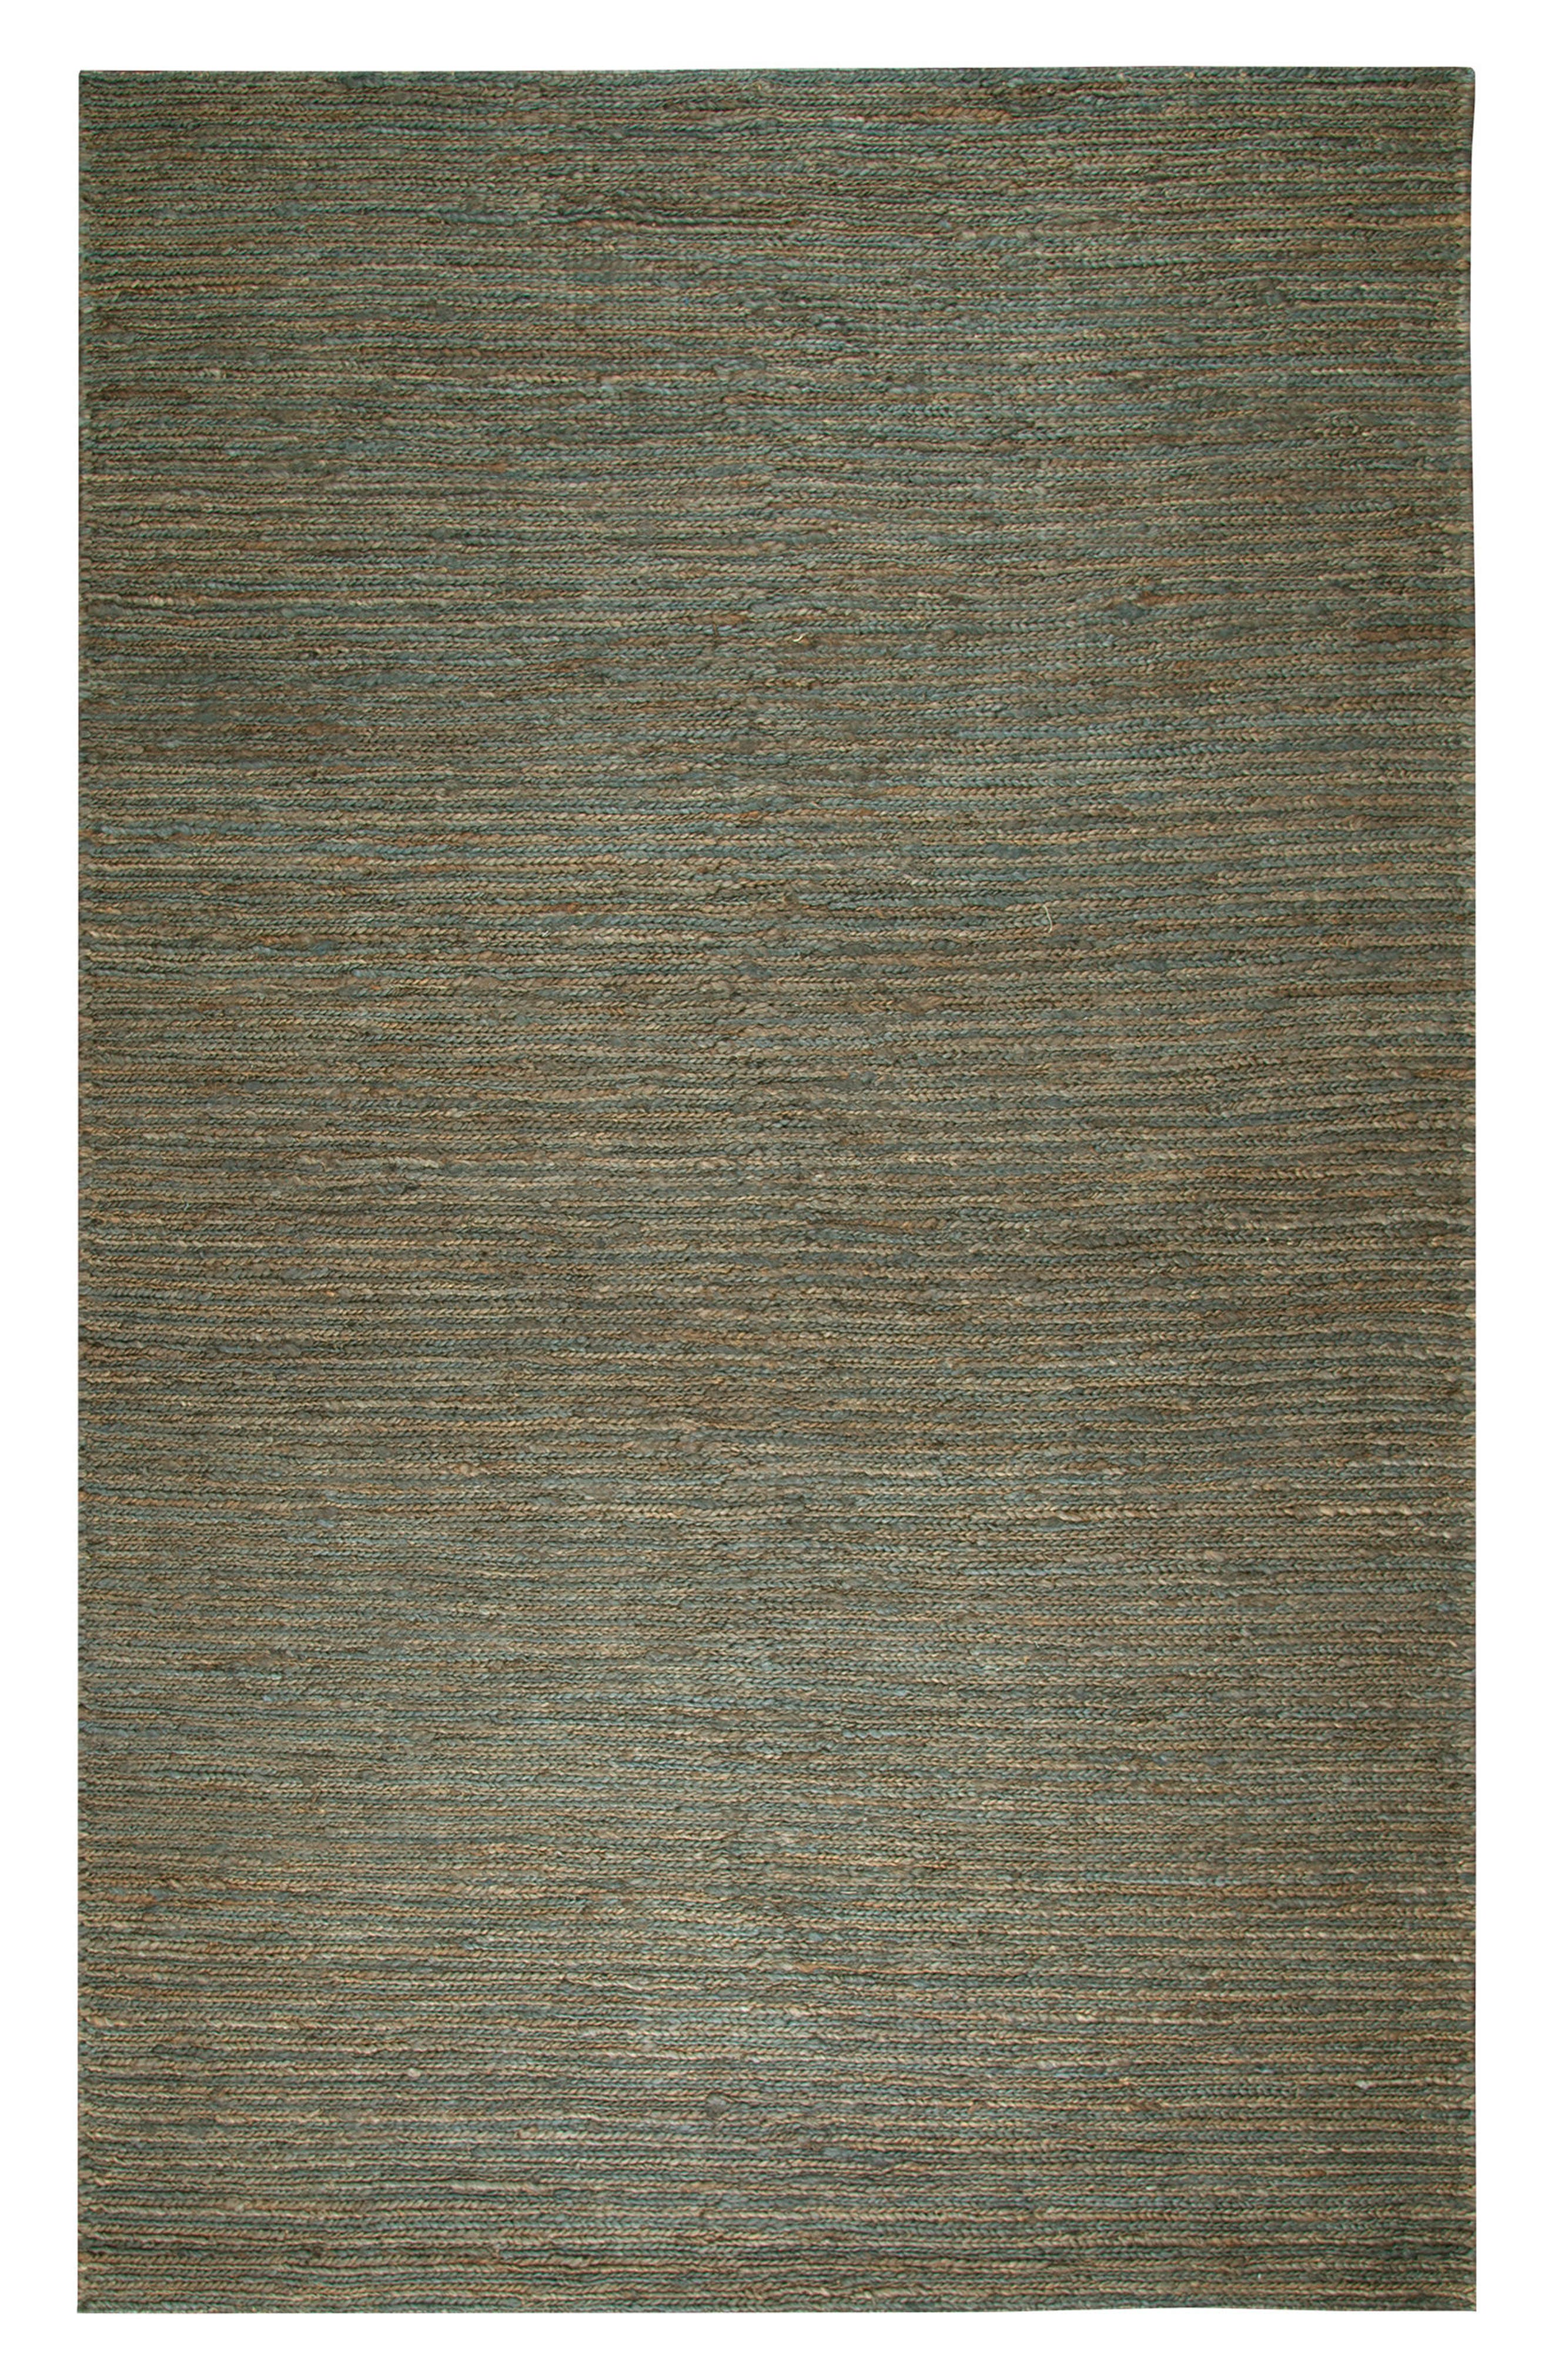 'Whittier Collection' Handwoven Jute Area Rug,                         Main,                         color, Blue